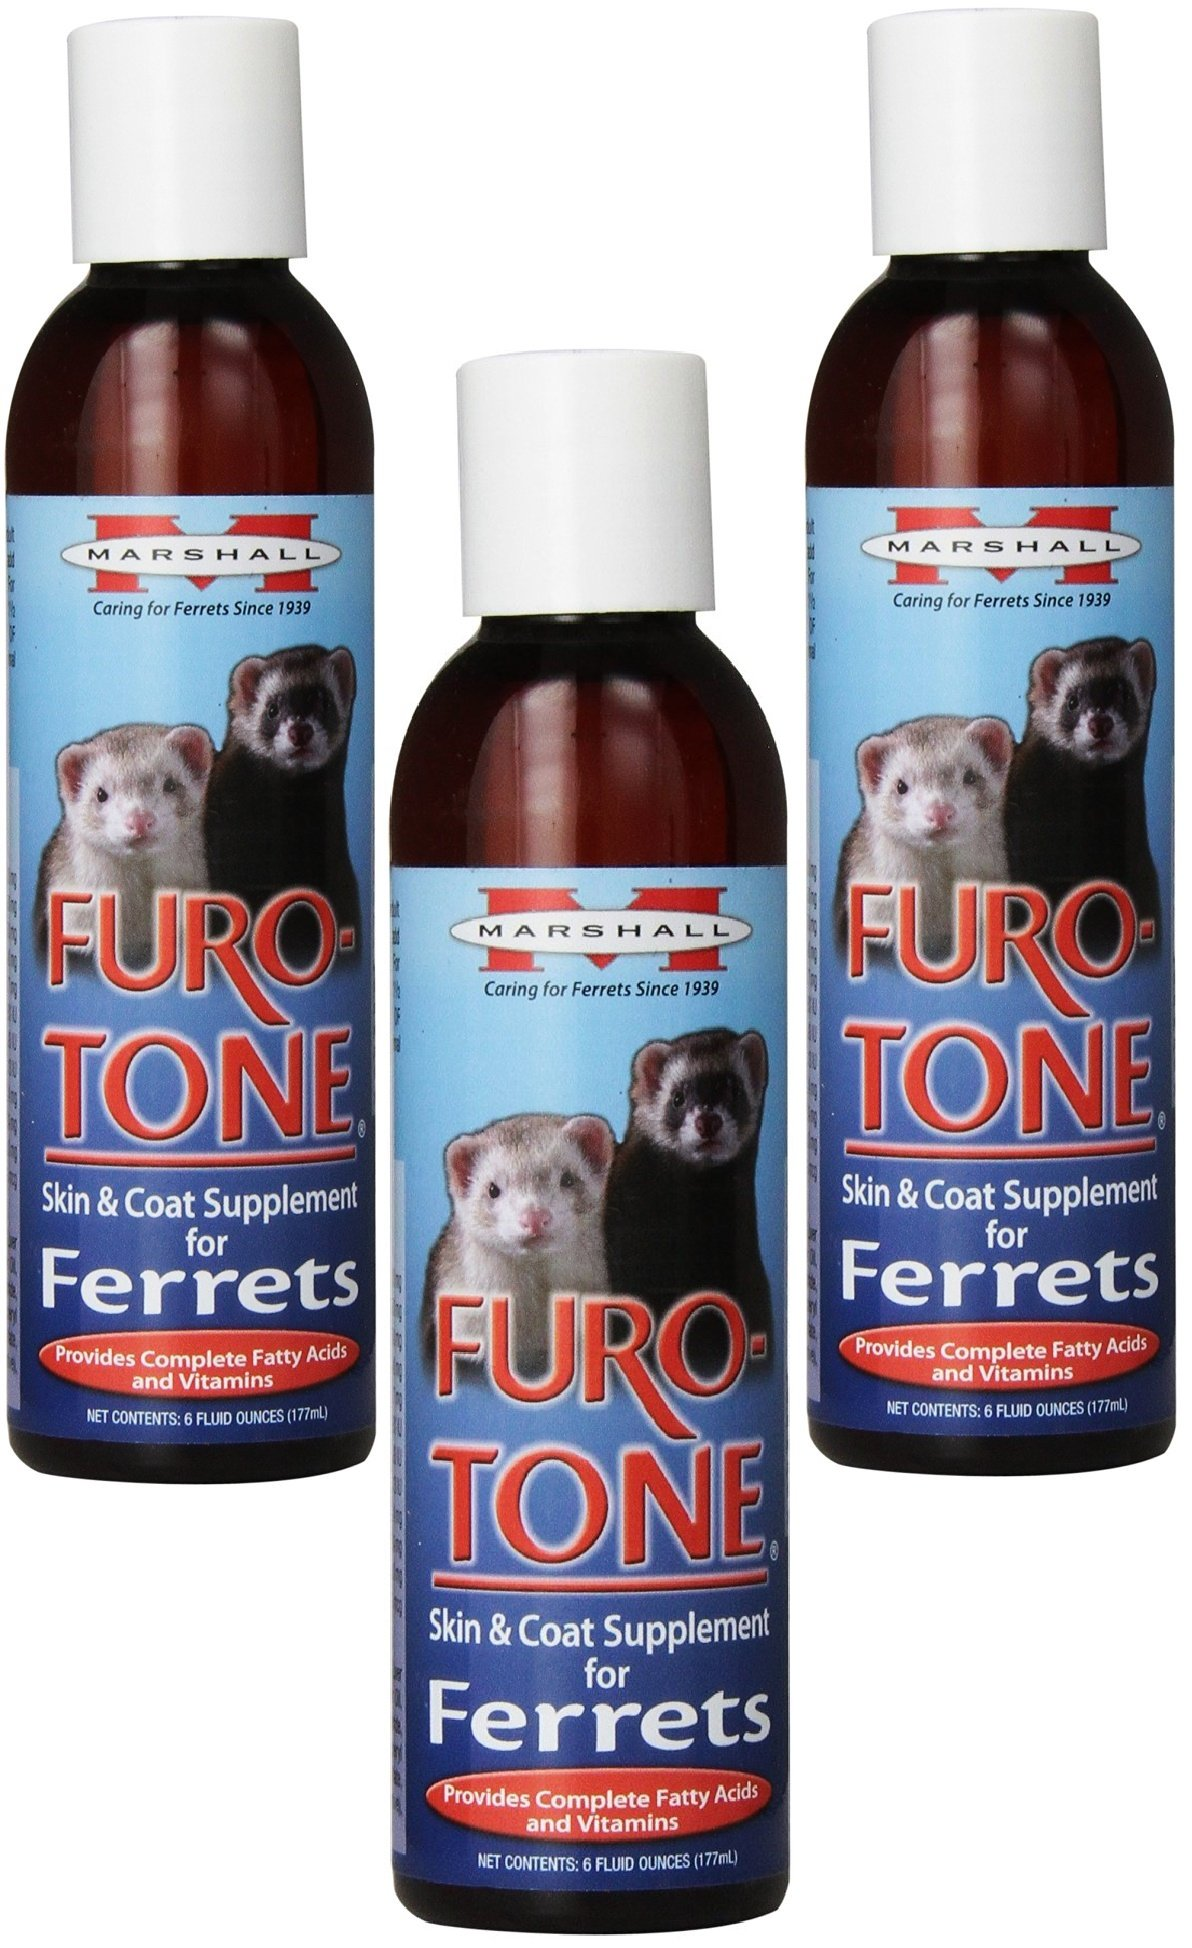 (3 Pack) Marshall Furo Tone Vitamin Supplement for Ferrets, 6-Ounce each